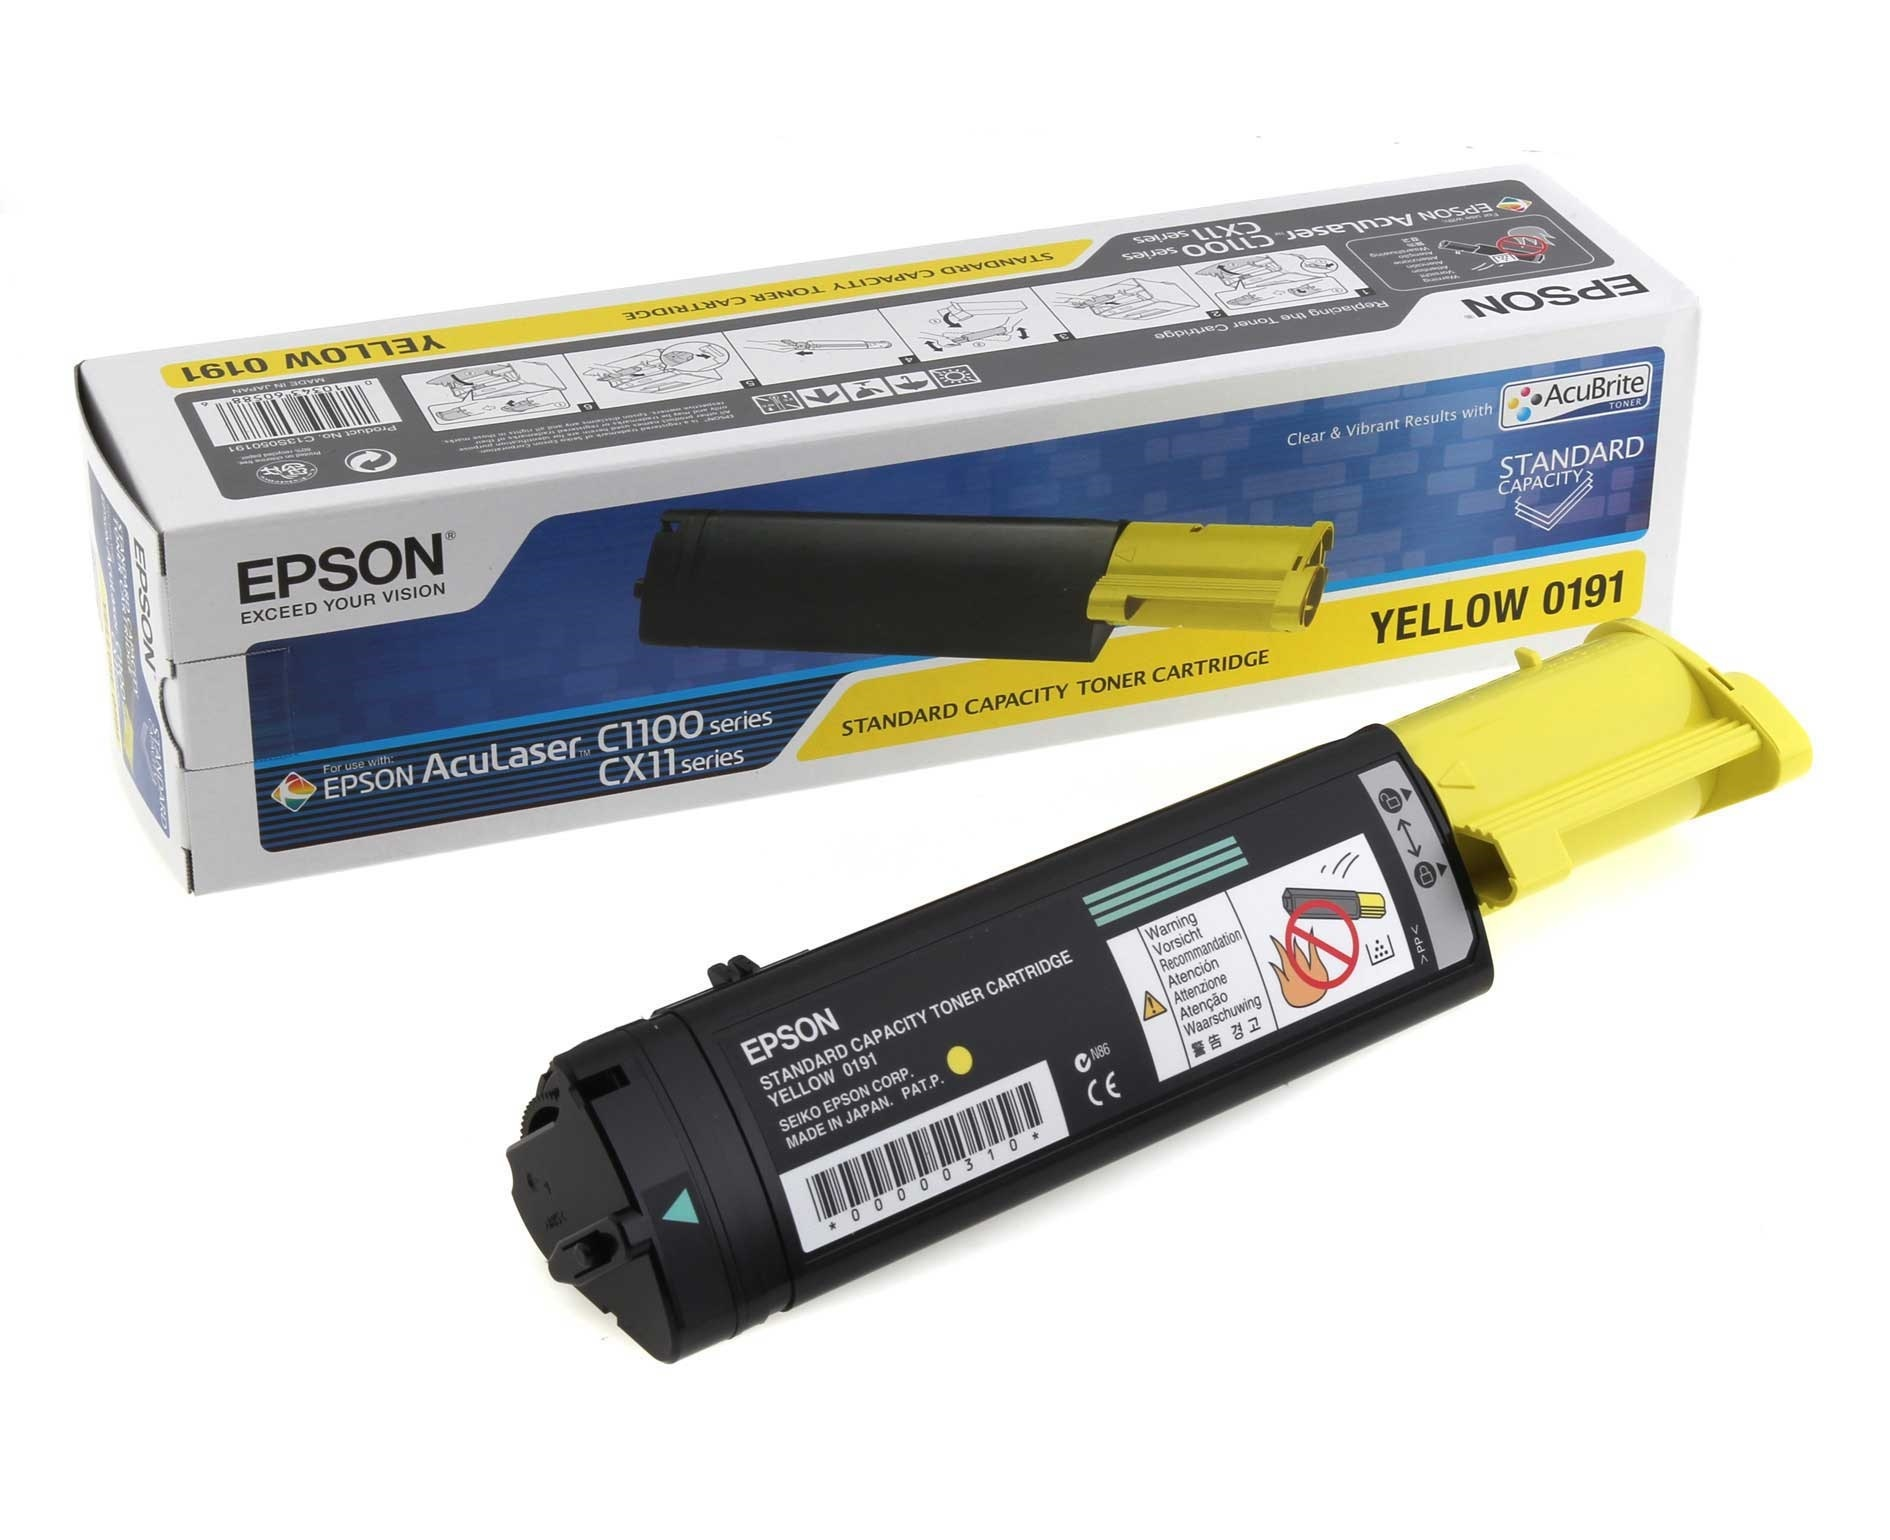 Epson toner Yellow 0191, C13S050191